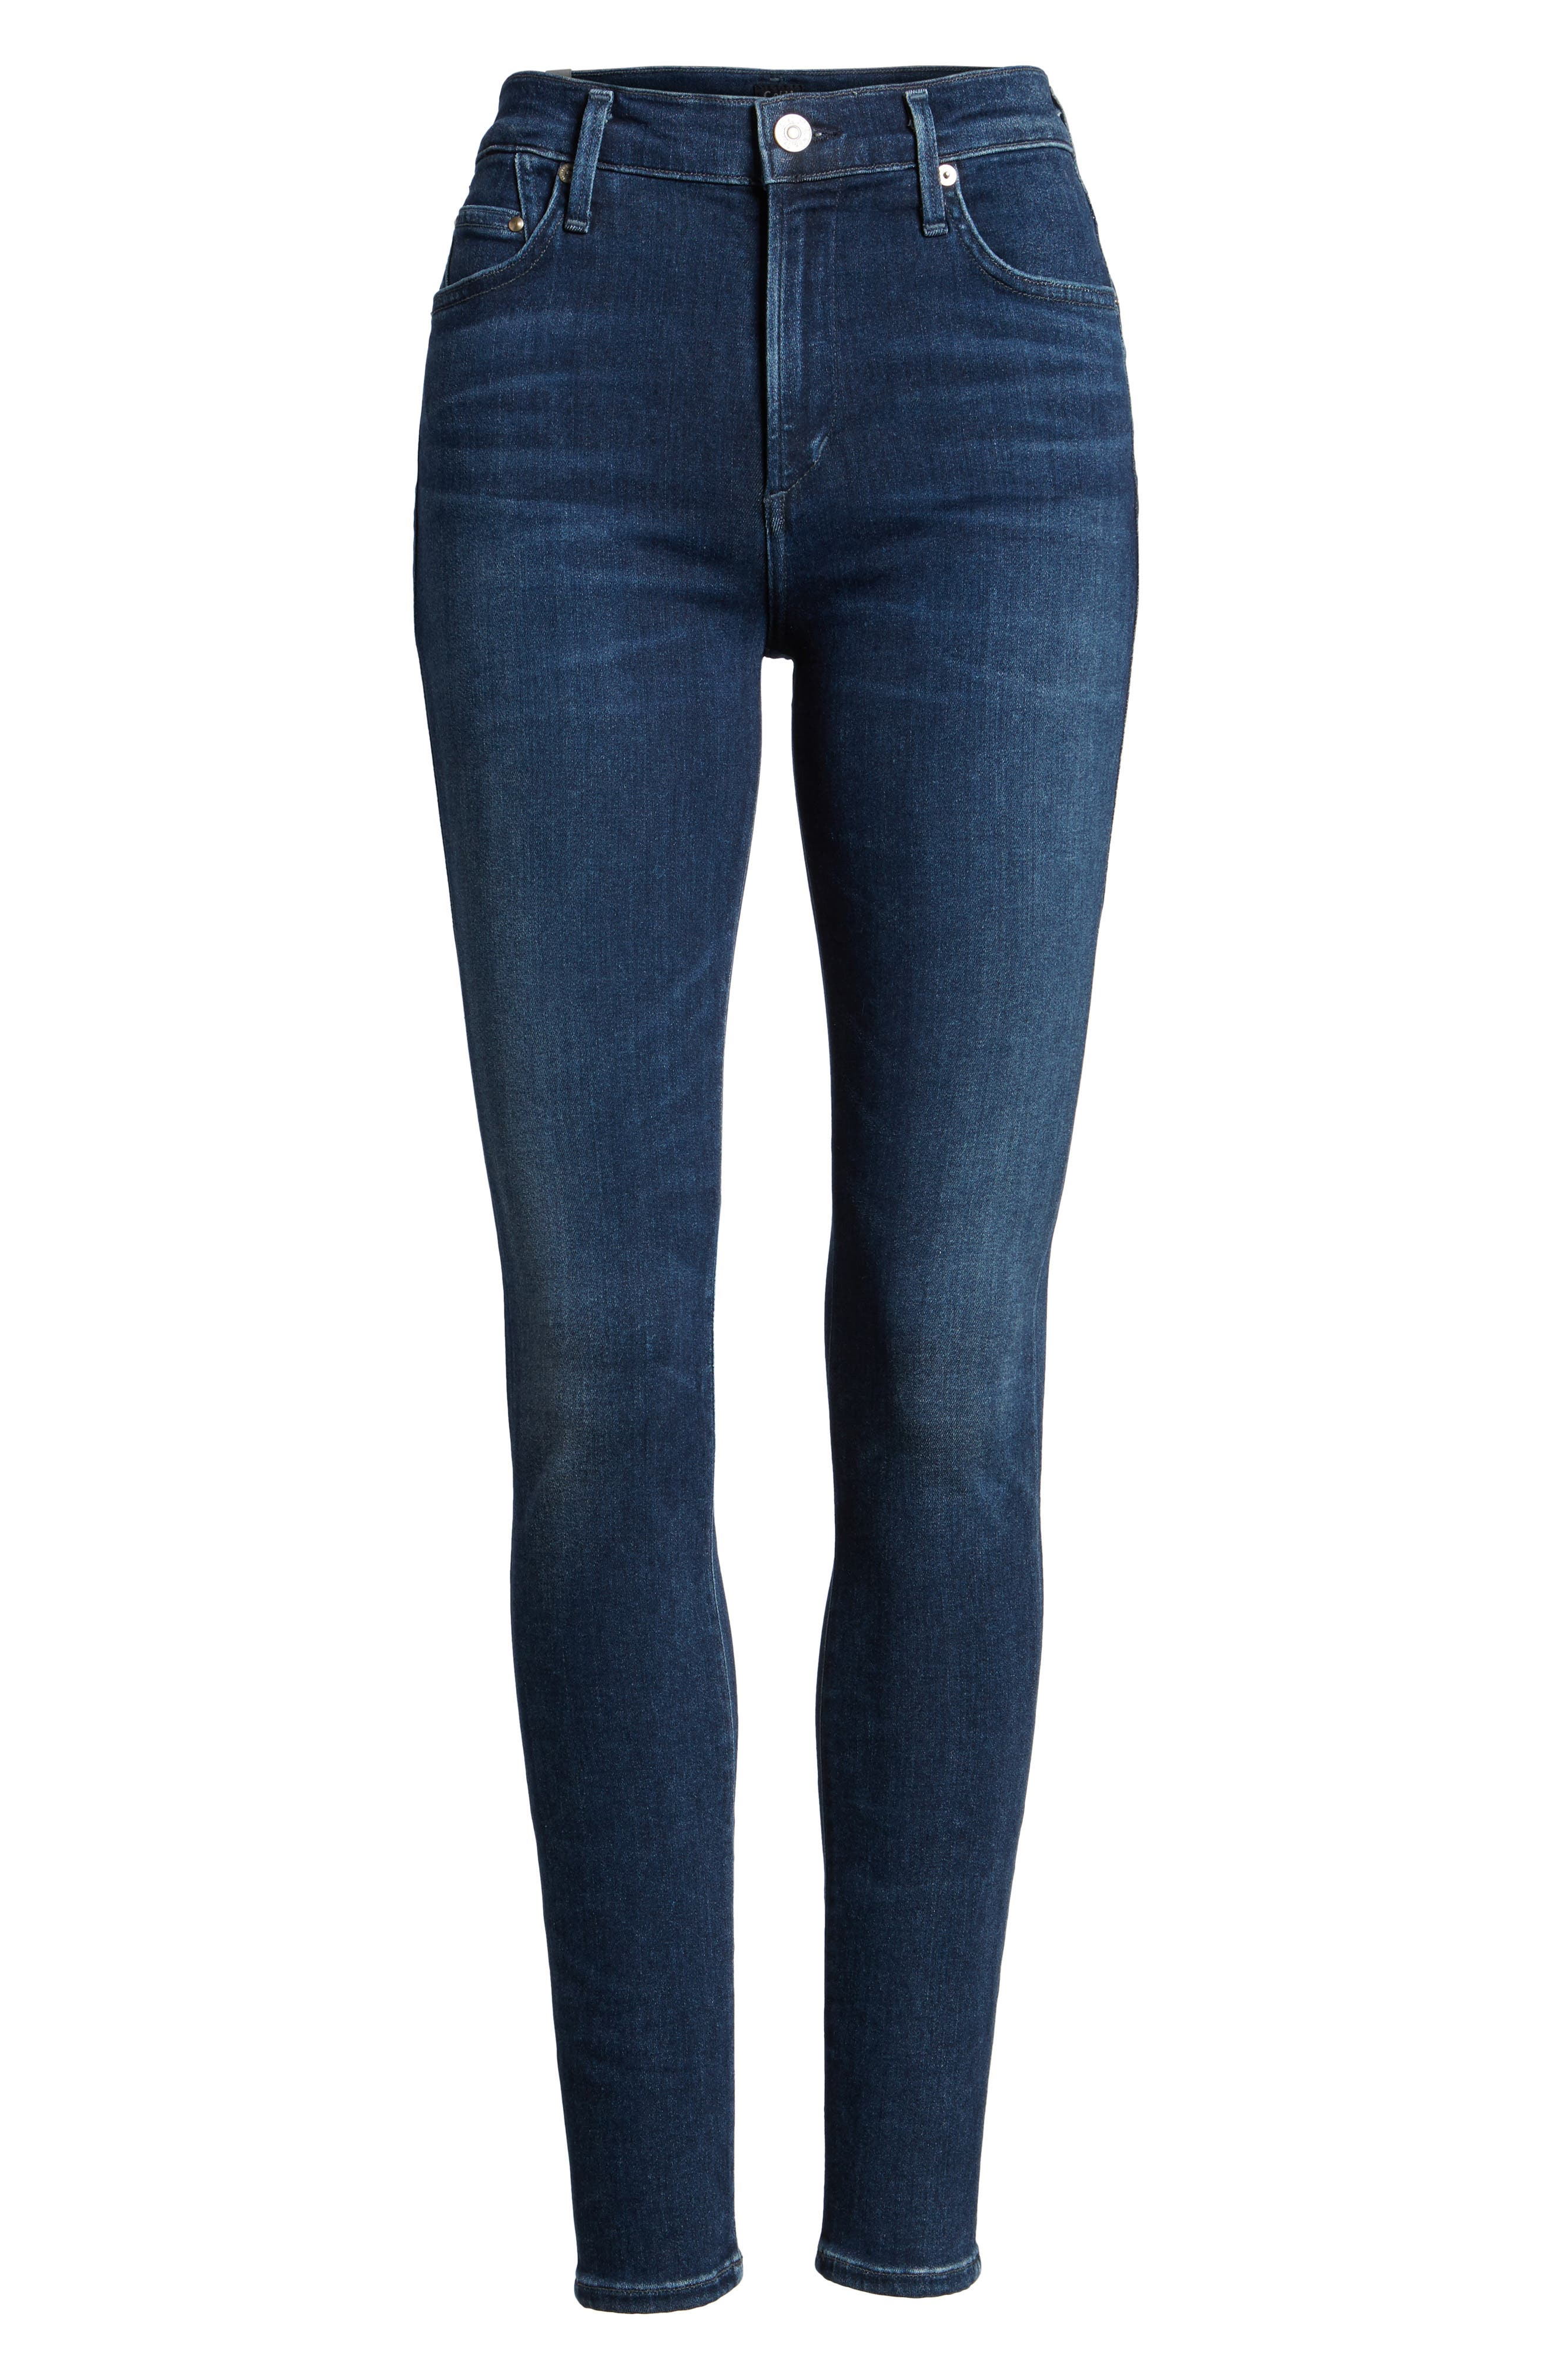 Sculpt - Rocket High Waist Skinny Jeans,                             Alternate thumbnail 7, color,                             Waverly